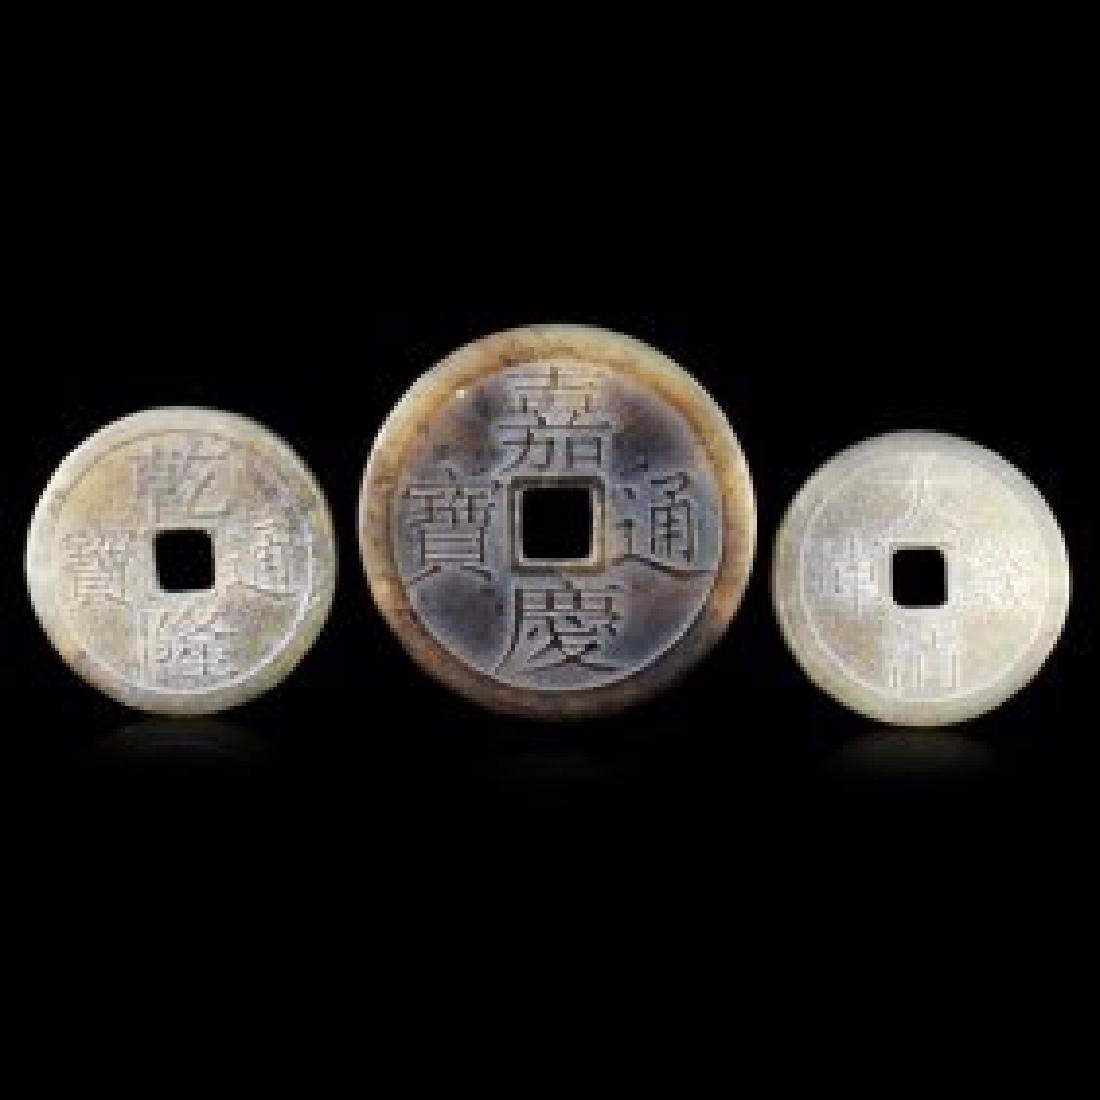 Chinese Old Jade Set of 3 Coins